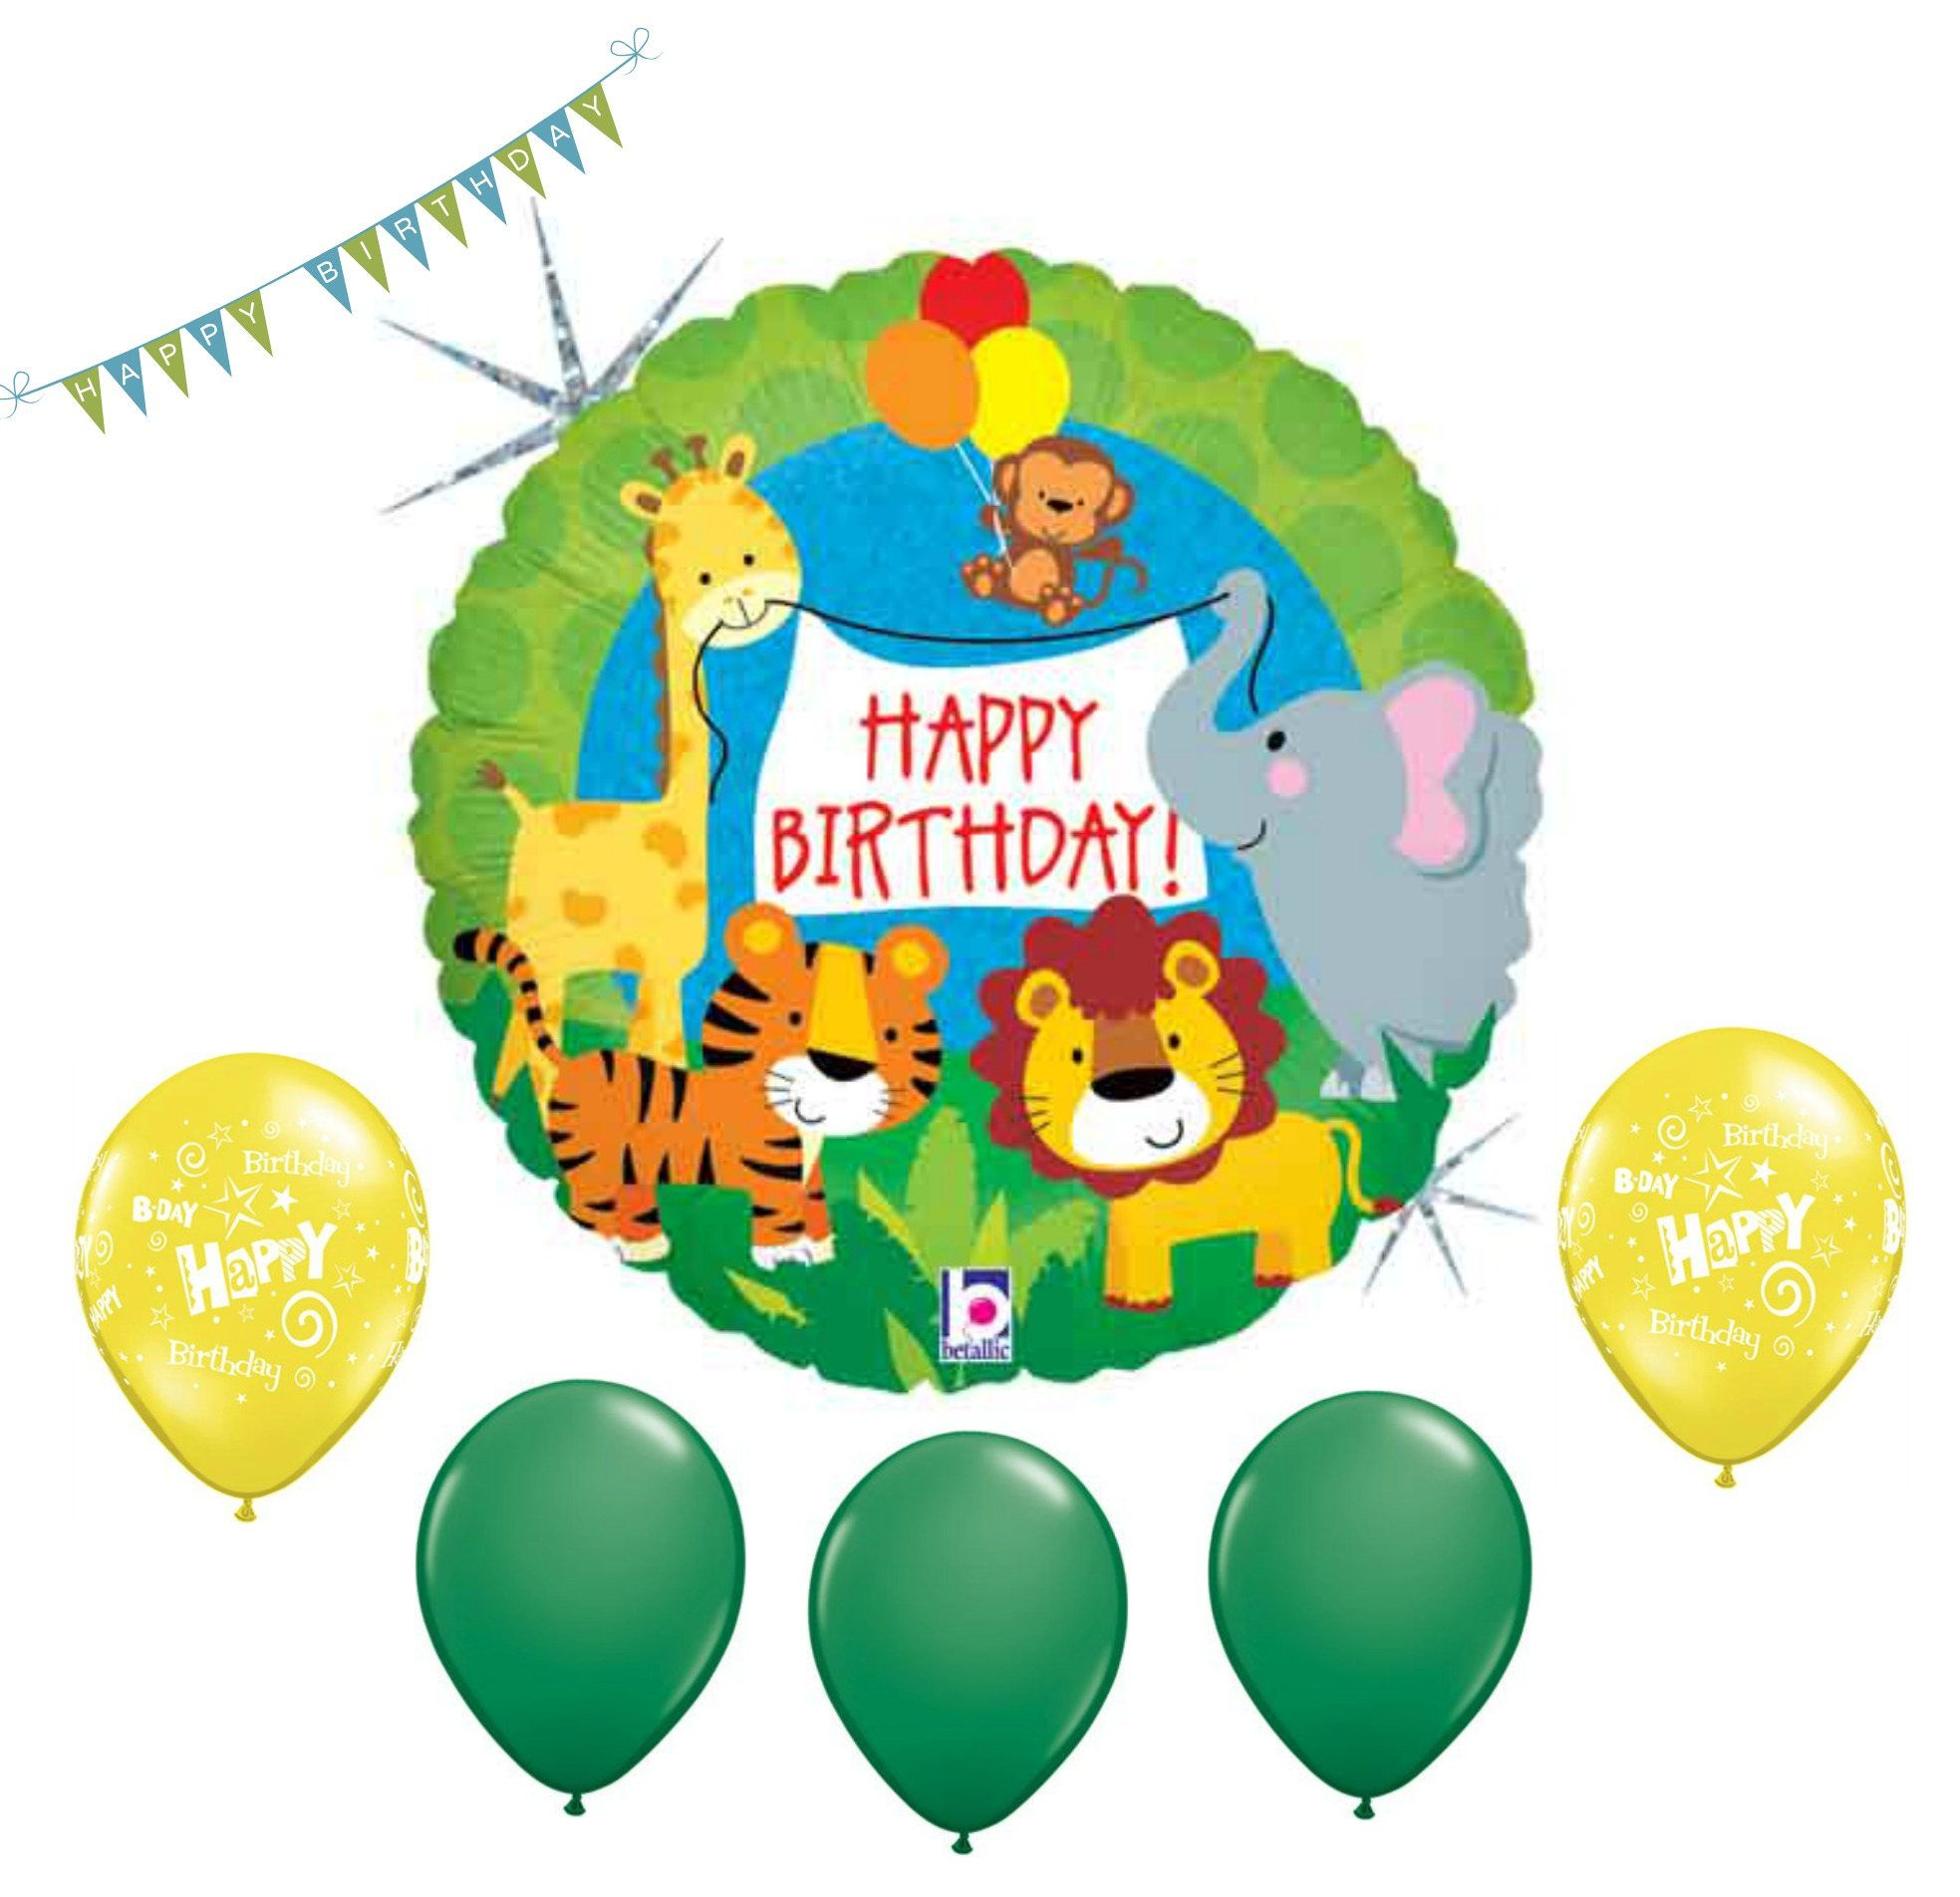 Sale Jungle Birthday Balloon Safari Bouquet 6 Balloons Lion Tiger Giraffe Monkey Elephant Kids Party Zoo Circus